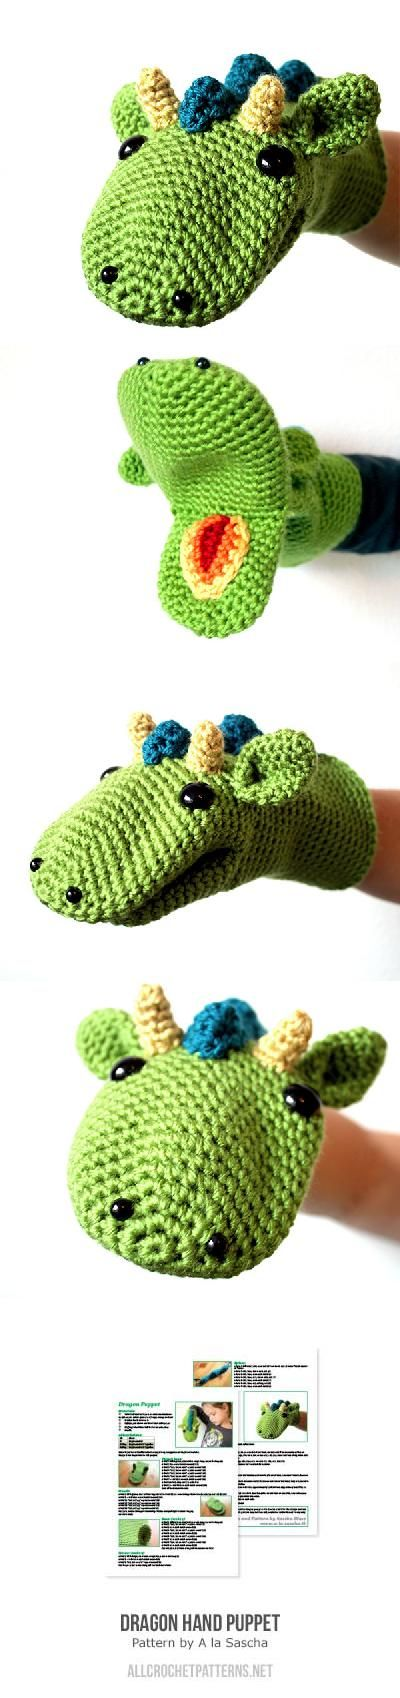 Dragon Hand Puppet Crochet Pattern | What a cute birthday present idea for a little boy or girl